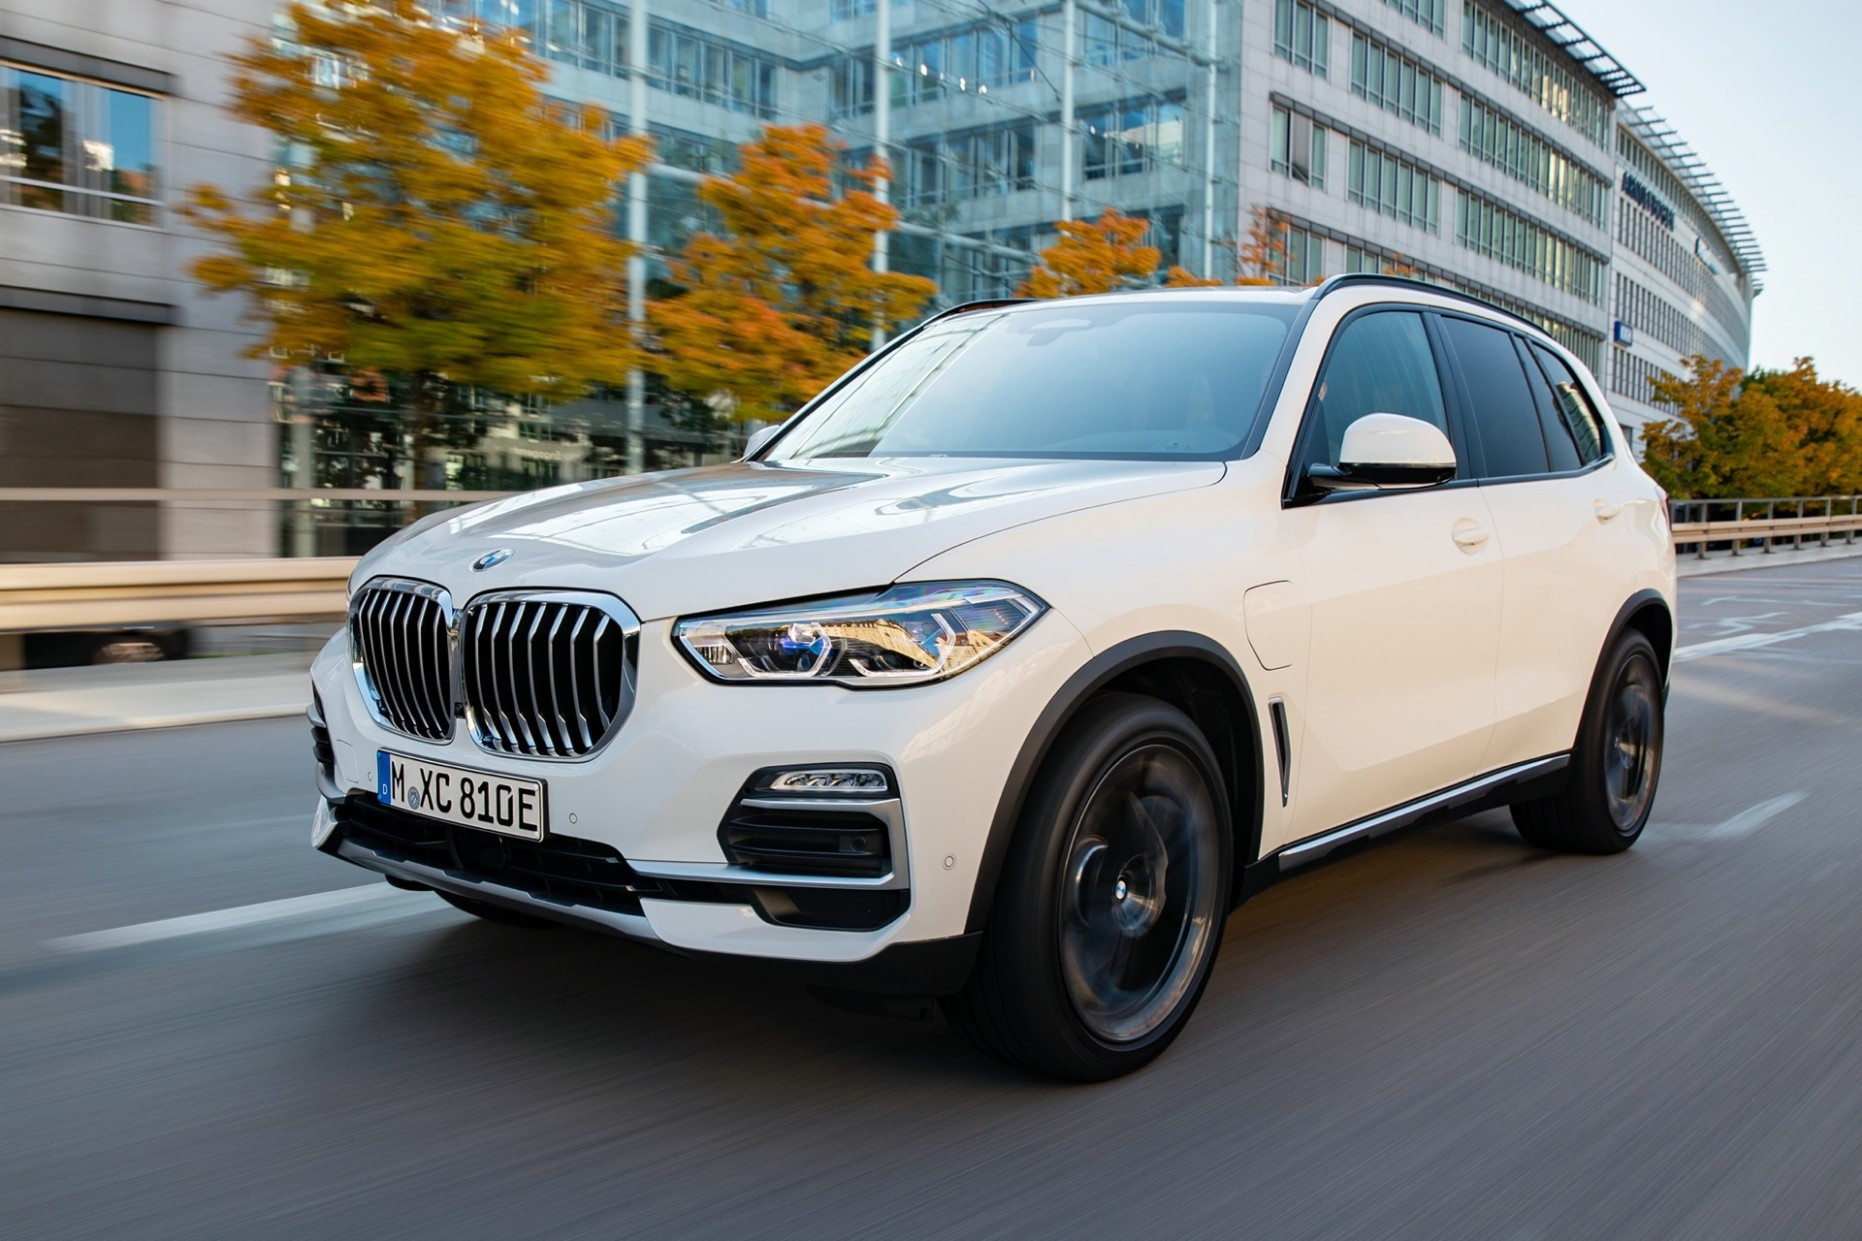 5 BMW X5 plug-in hybrid SUV: More power, more than double the - BMW Truck 2021